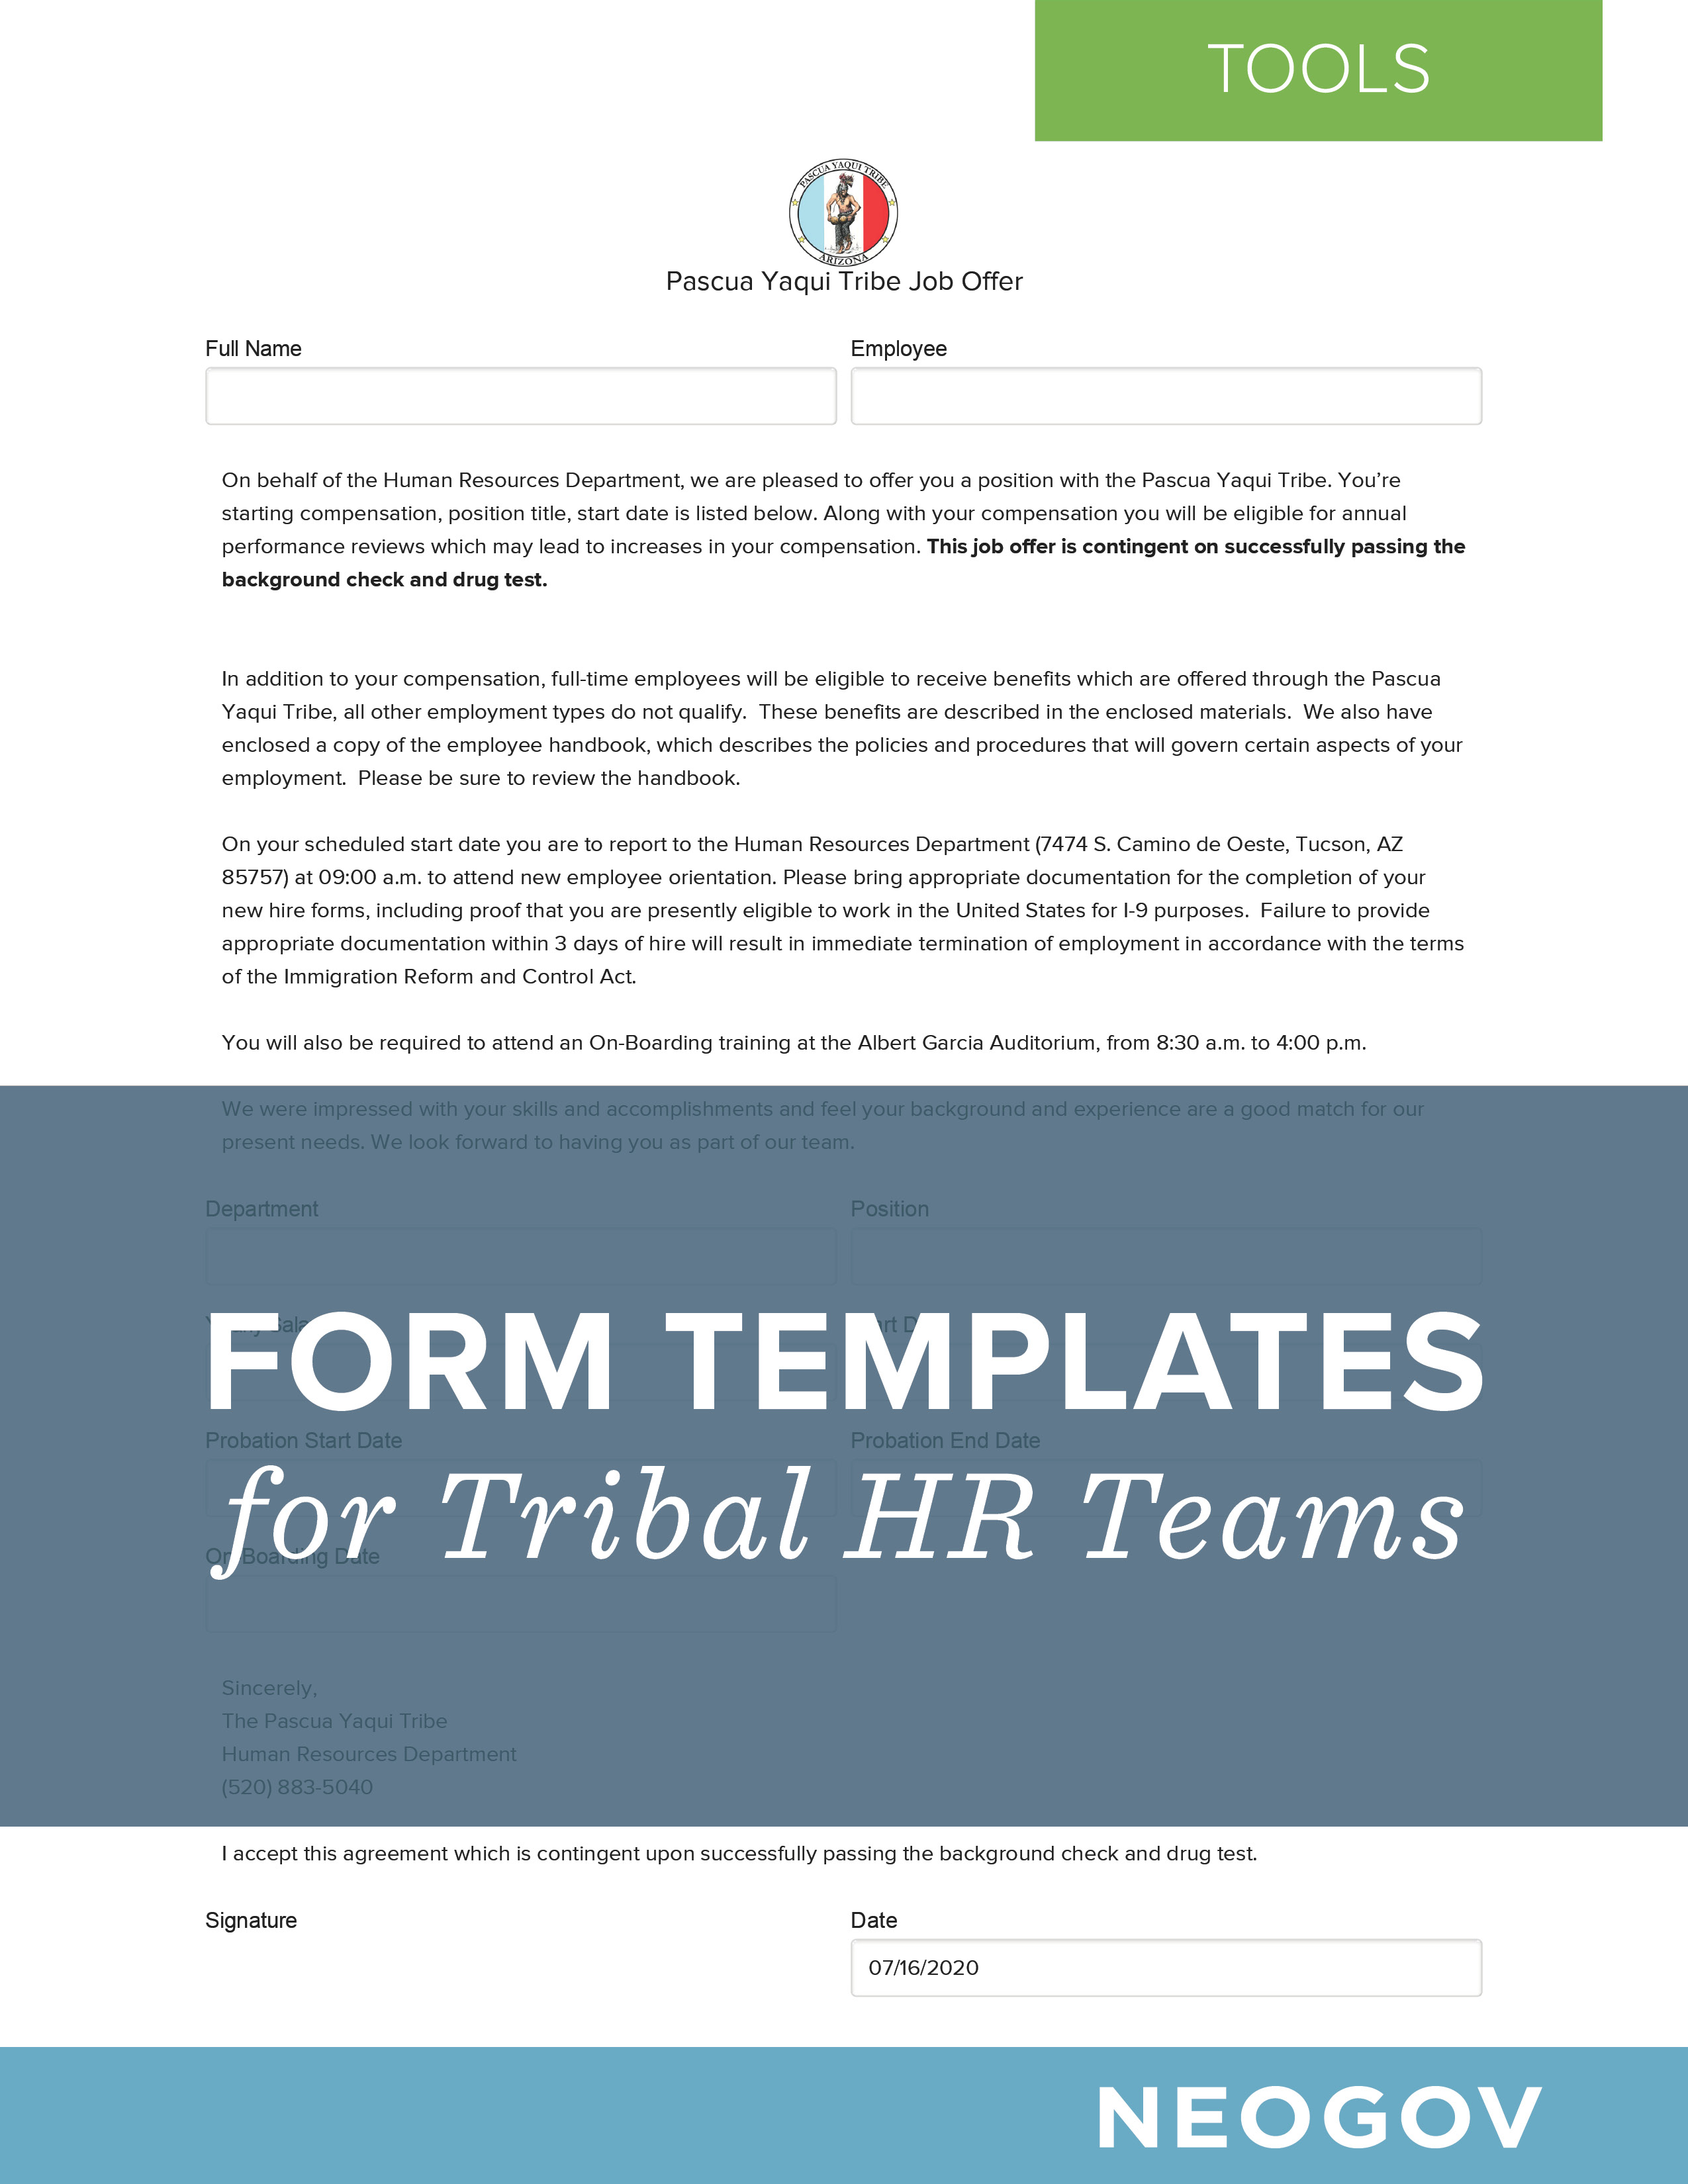 Form Templates for Tribal HR Teams